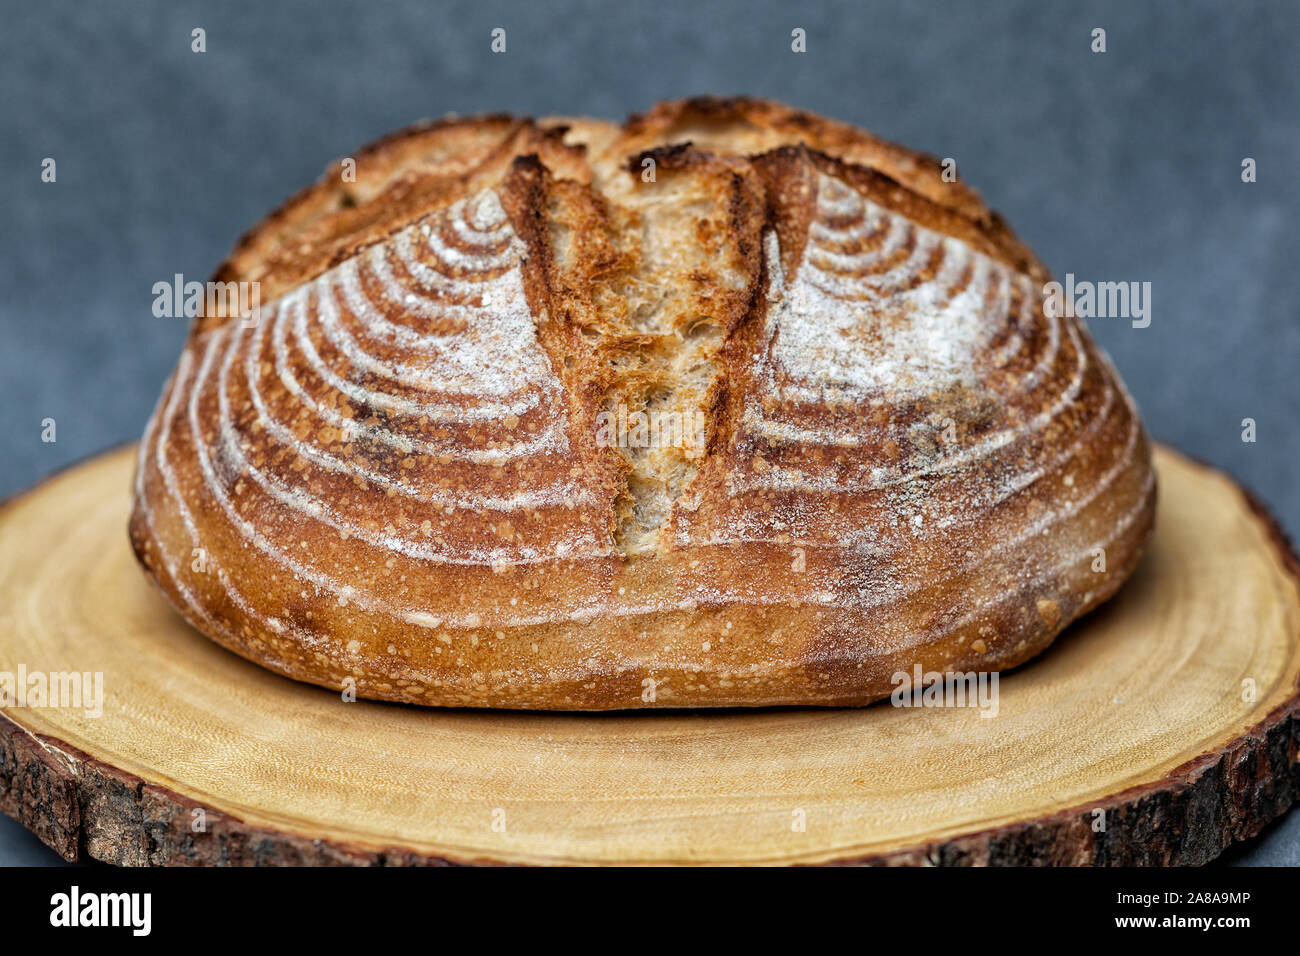 Artisan loaf of traditional Homemade sourdough Boule bread with crust on a wooden board with grey background Stock Photo